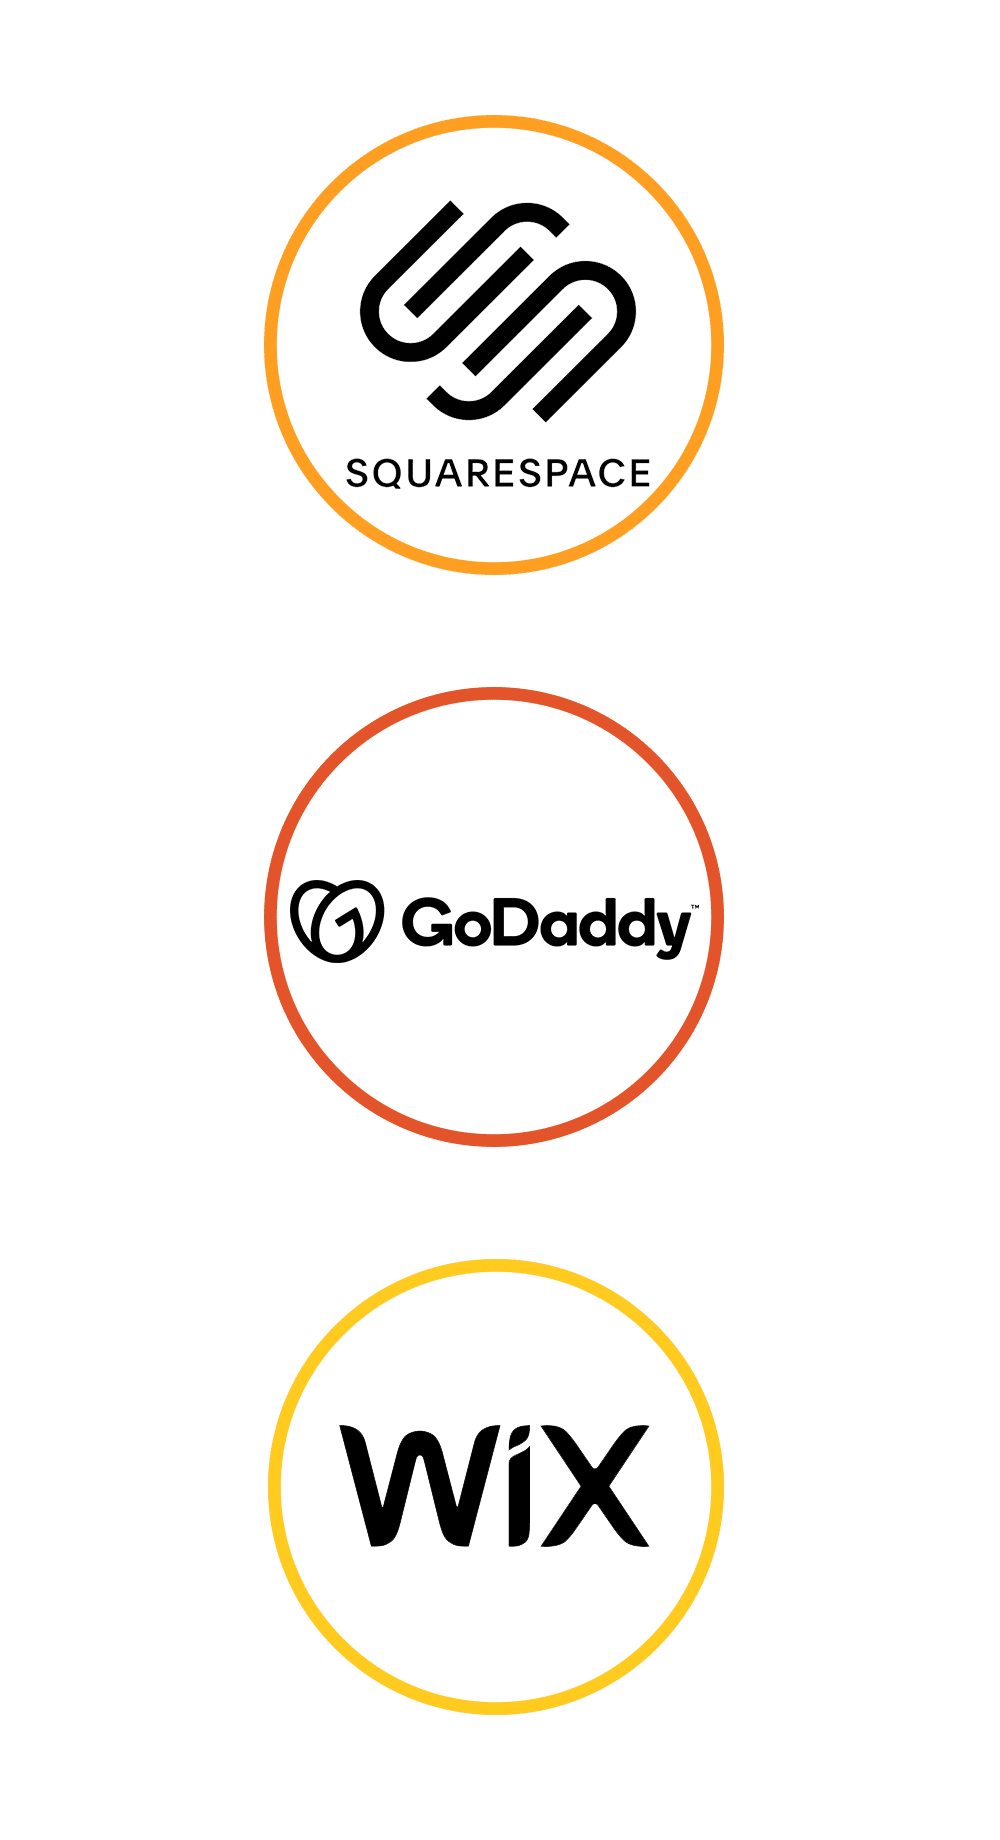 GoDaddy, Squarespace, and Wix